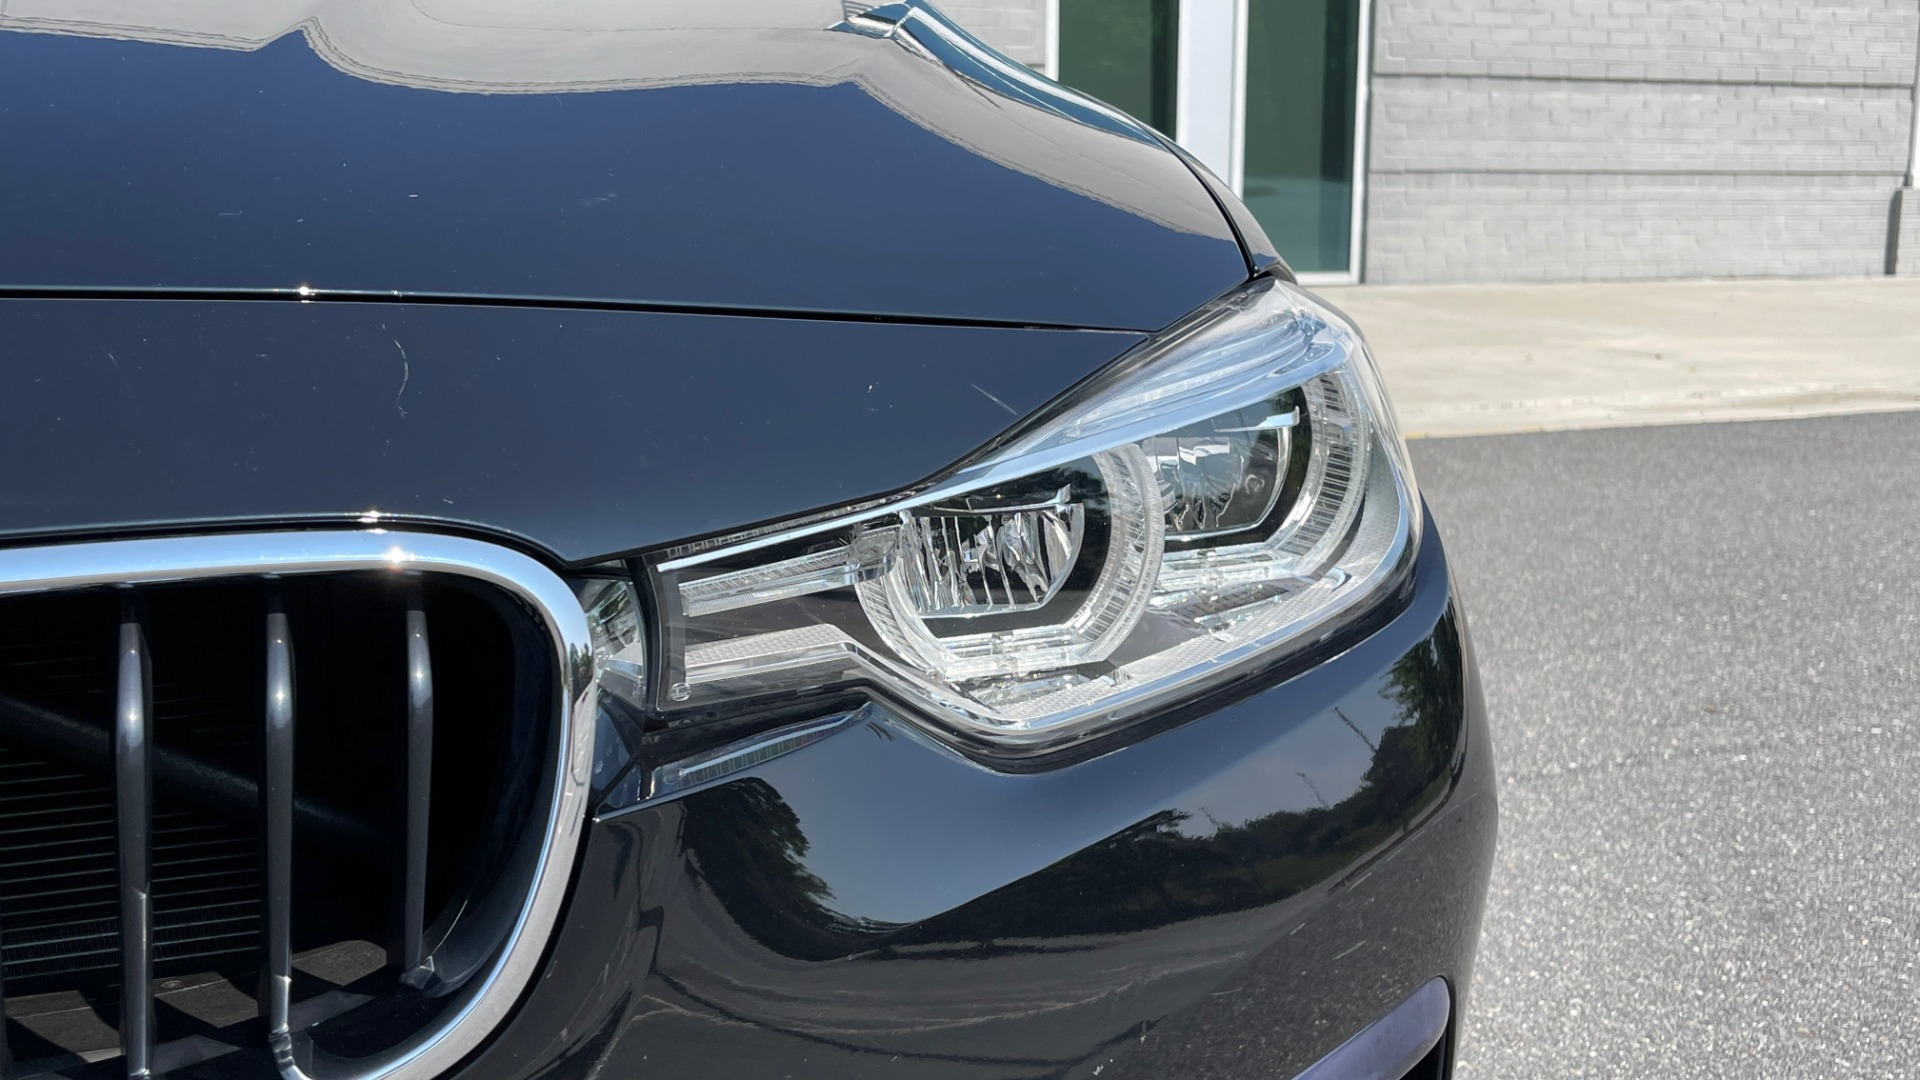 Used 2018 BMW 3 SERIES 330I XDRIVE / CONV PKG / SUNROOF / HTD STS / ABSD / REARVIEW for sale $30,695 at Formula Imports in Charlotte NC 28227 13